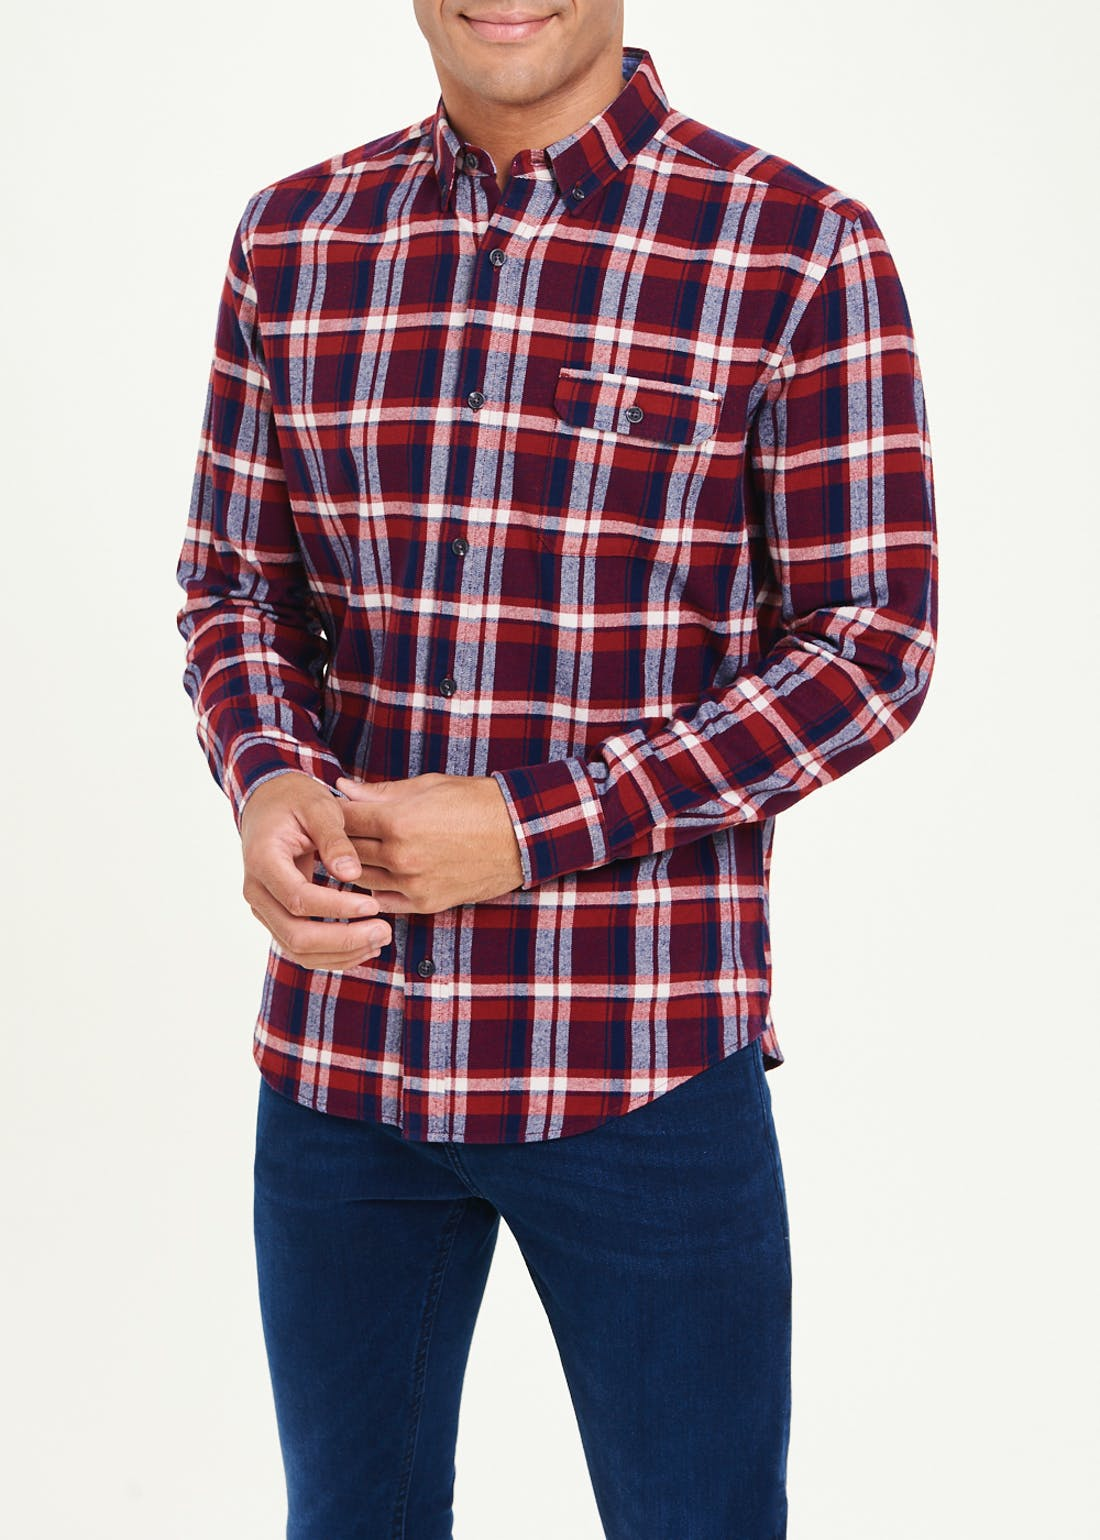 Long Sleeve Plaid Check Flannel Shirt